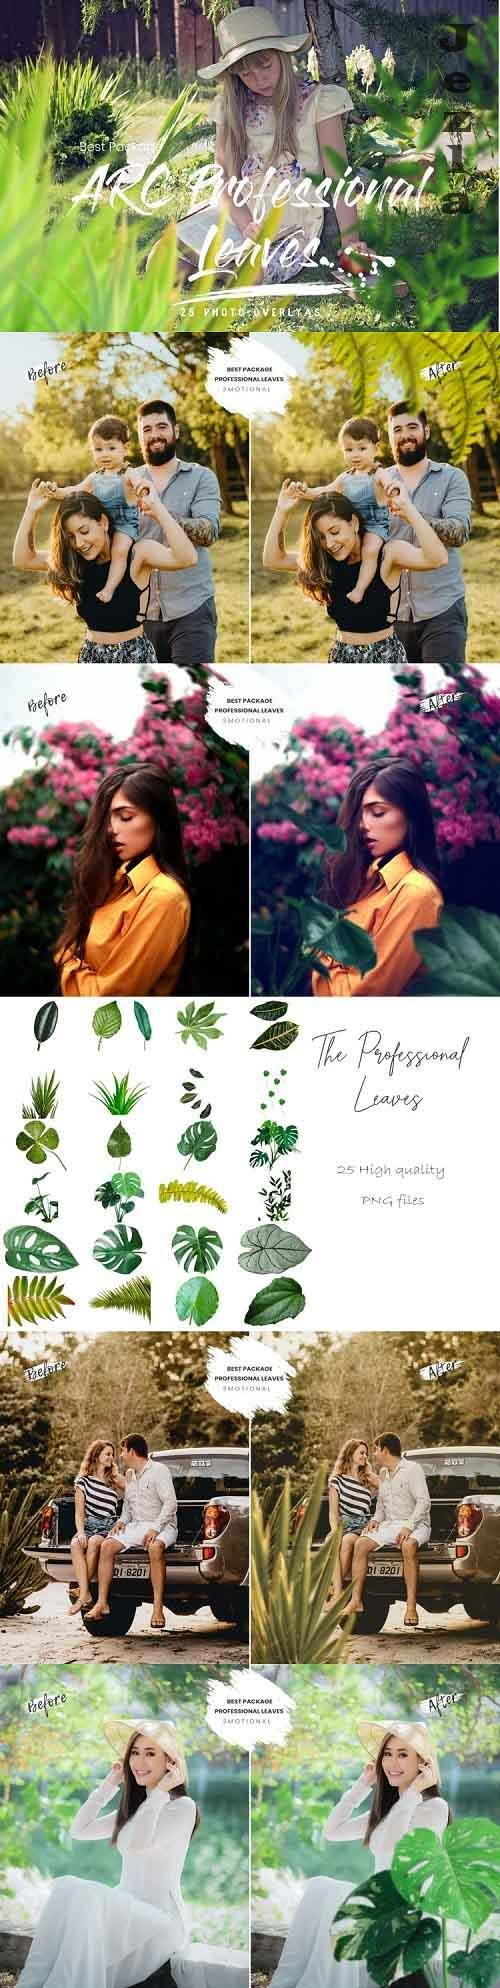 25 Arc Professional Leaves PNG Photoshop Overlays - 904882